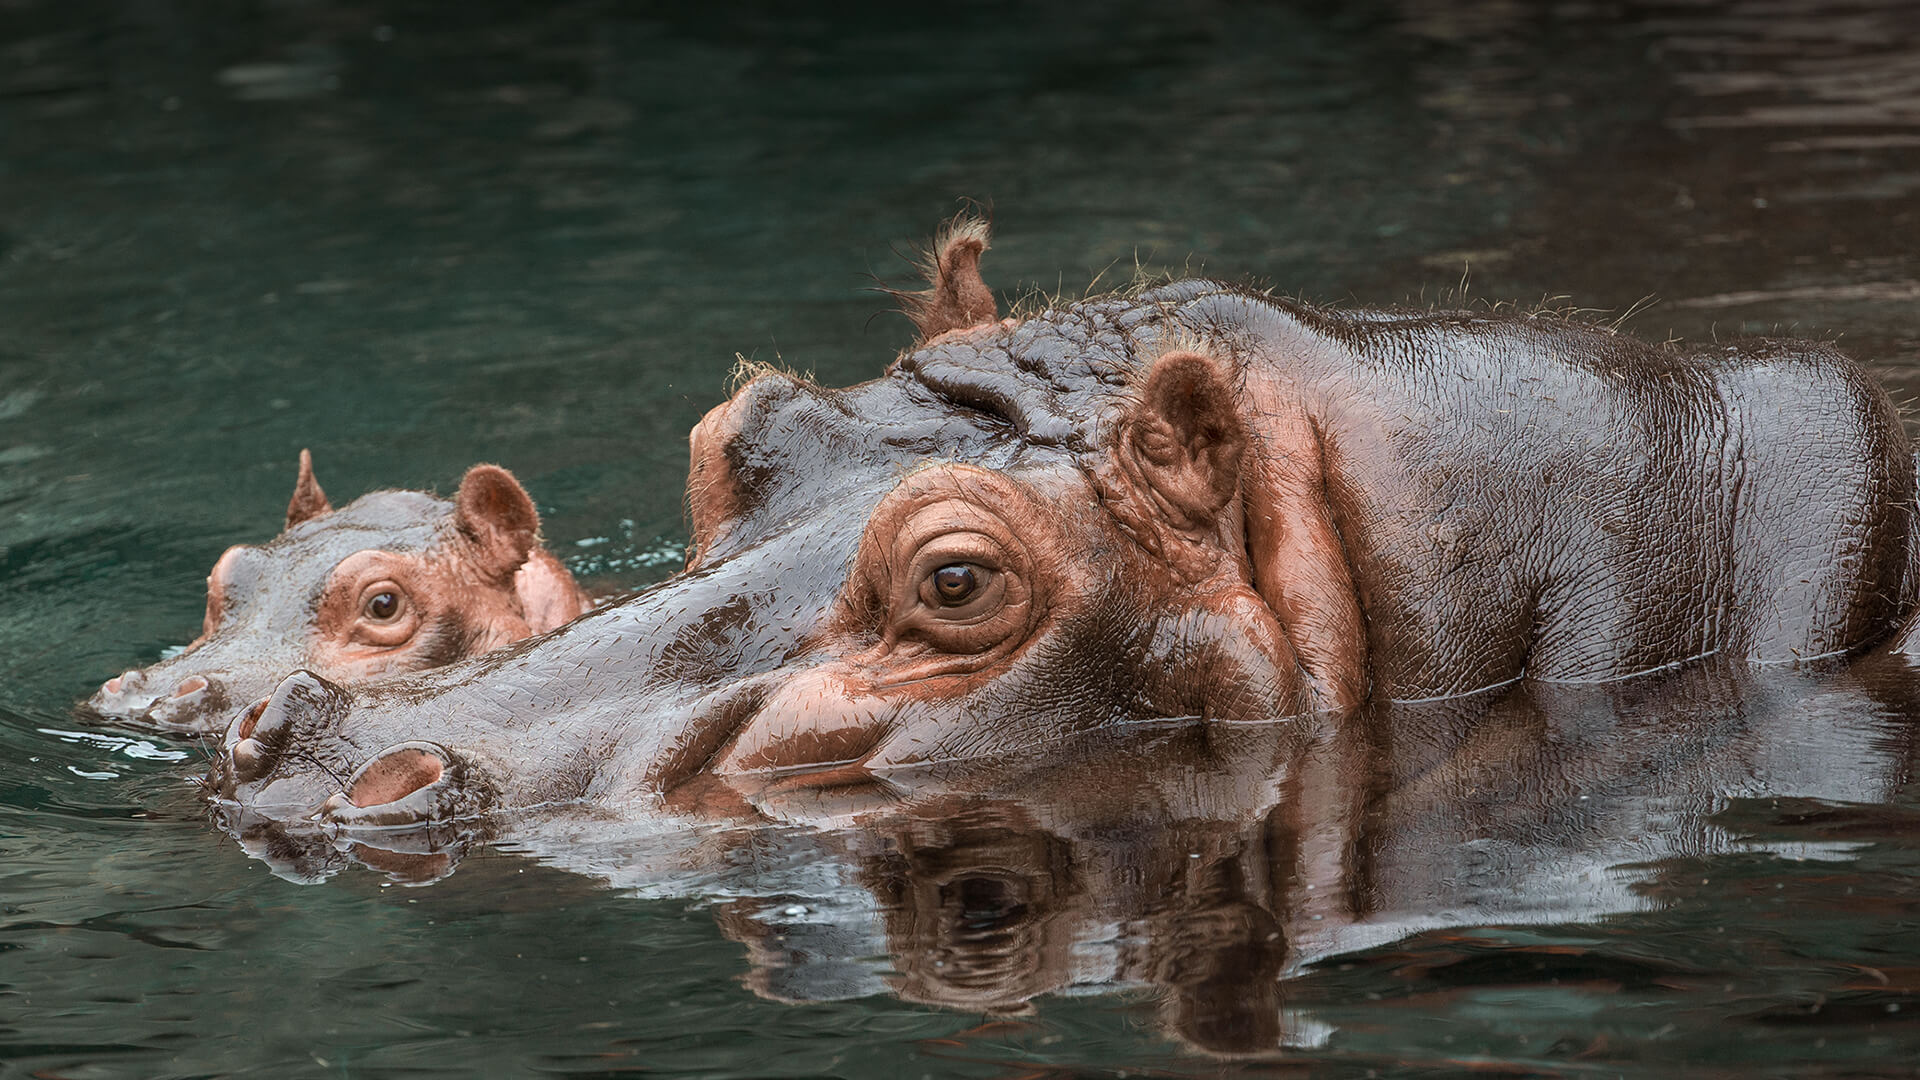 Animal Came In Her Mouth Porn hippo | san diego zoo animals & plants